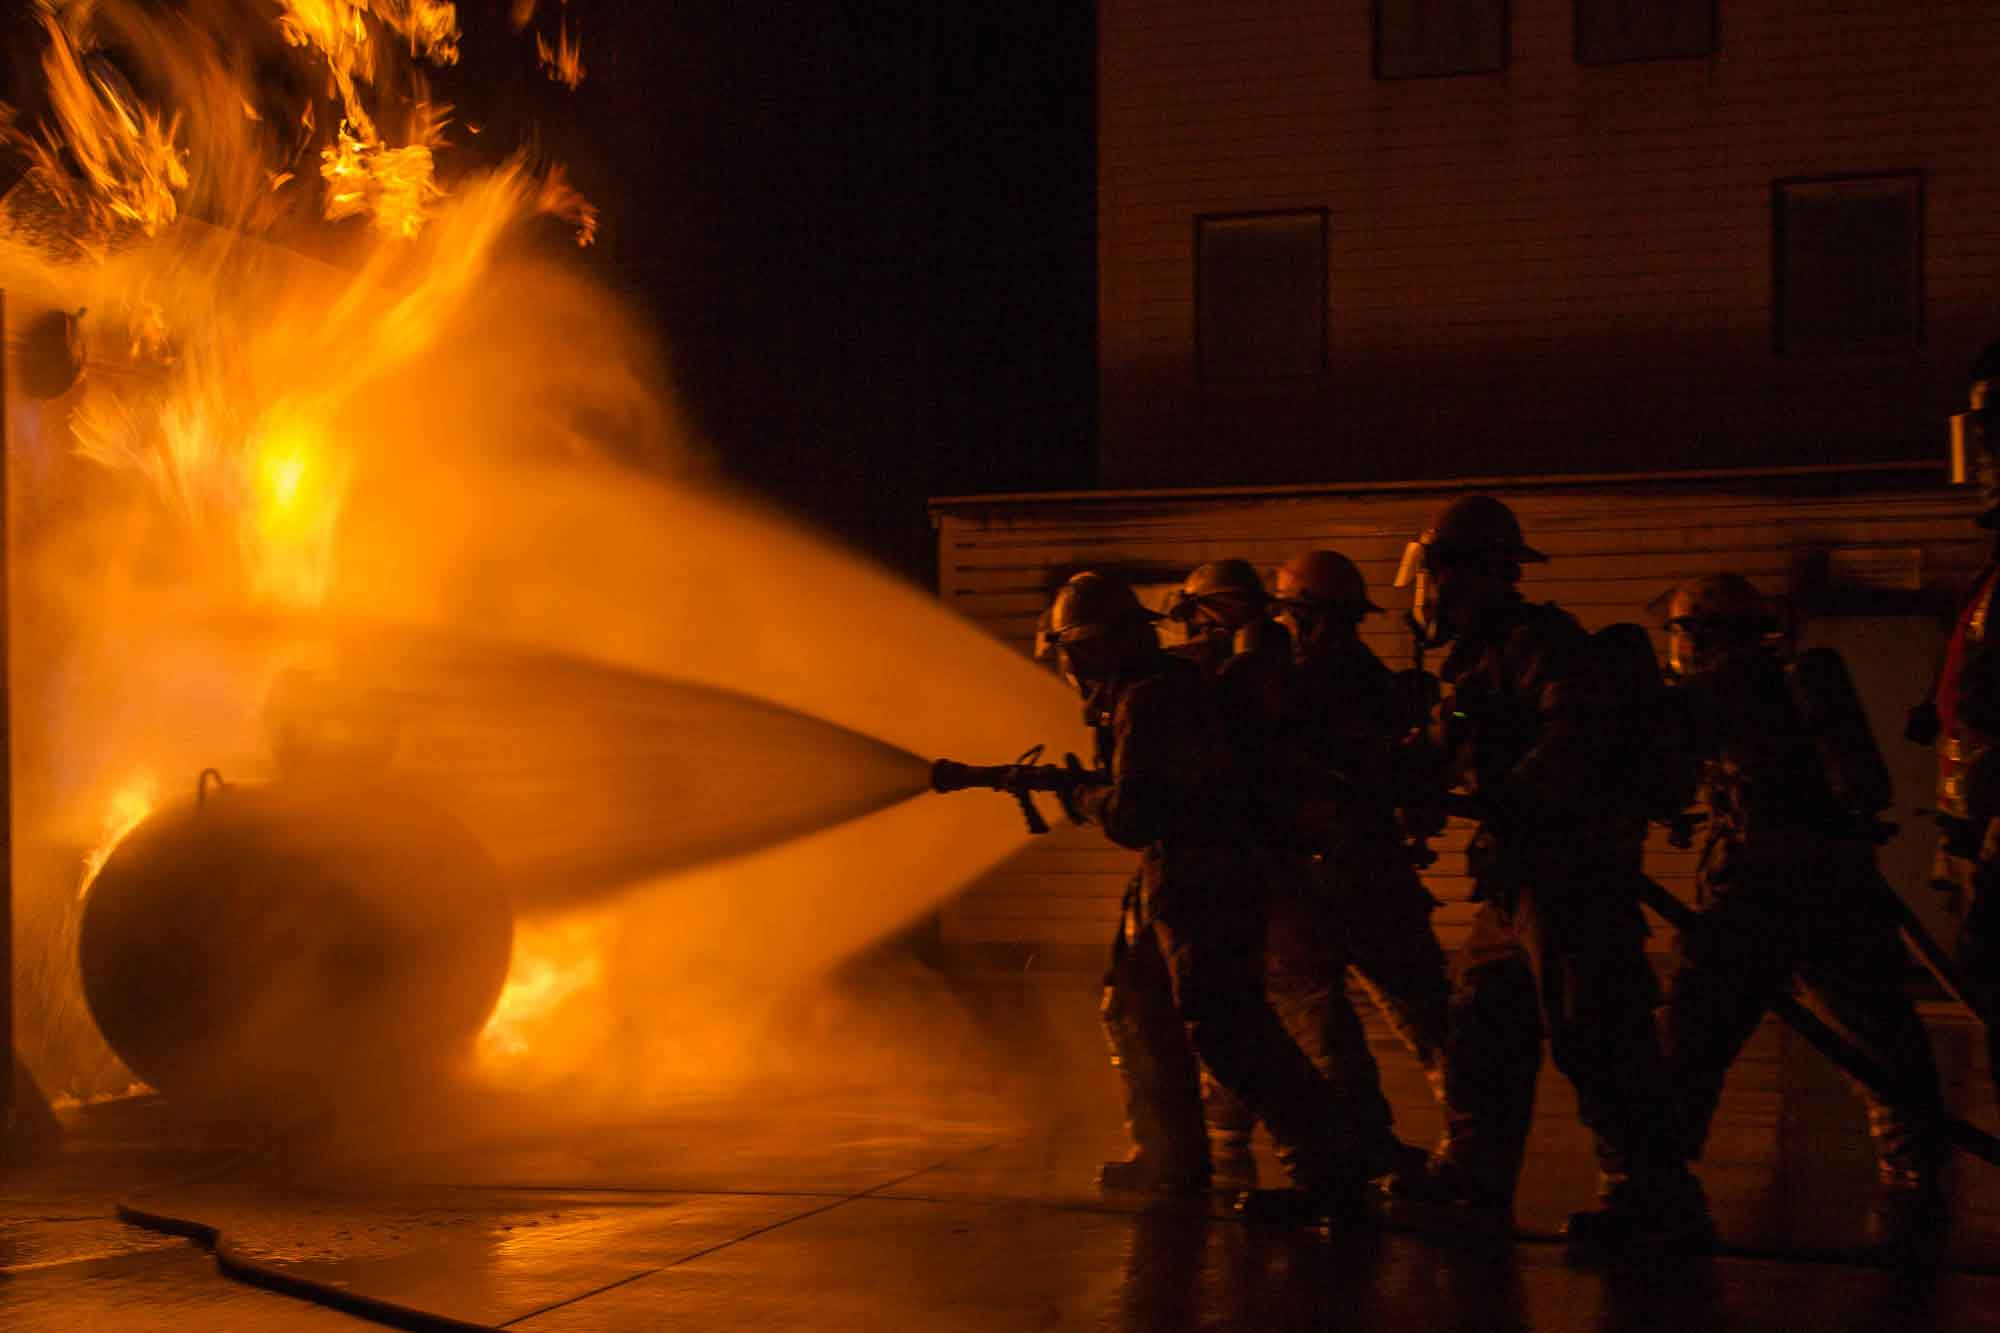 Four student firefighters practice putting out a fire